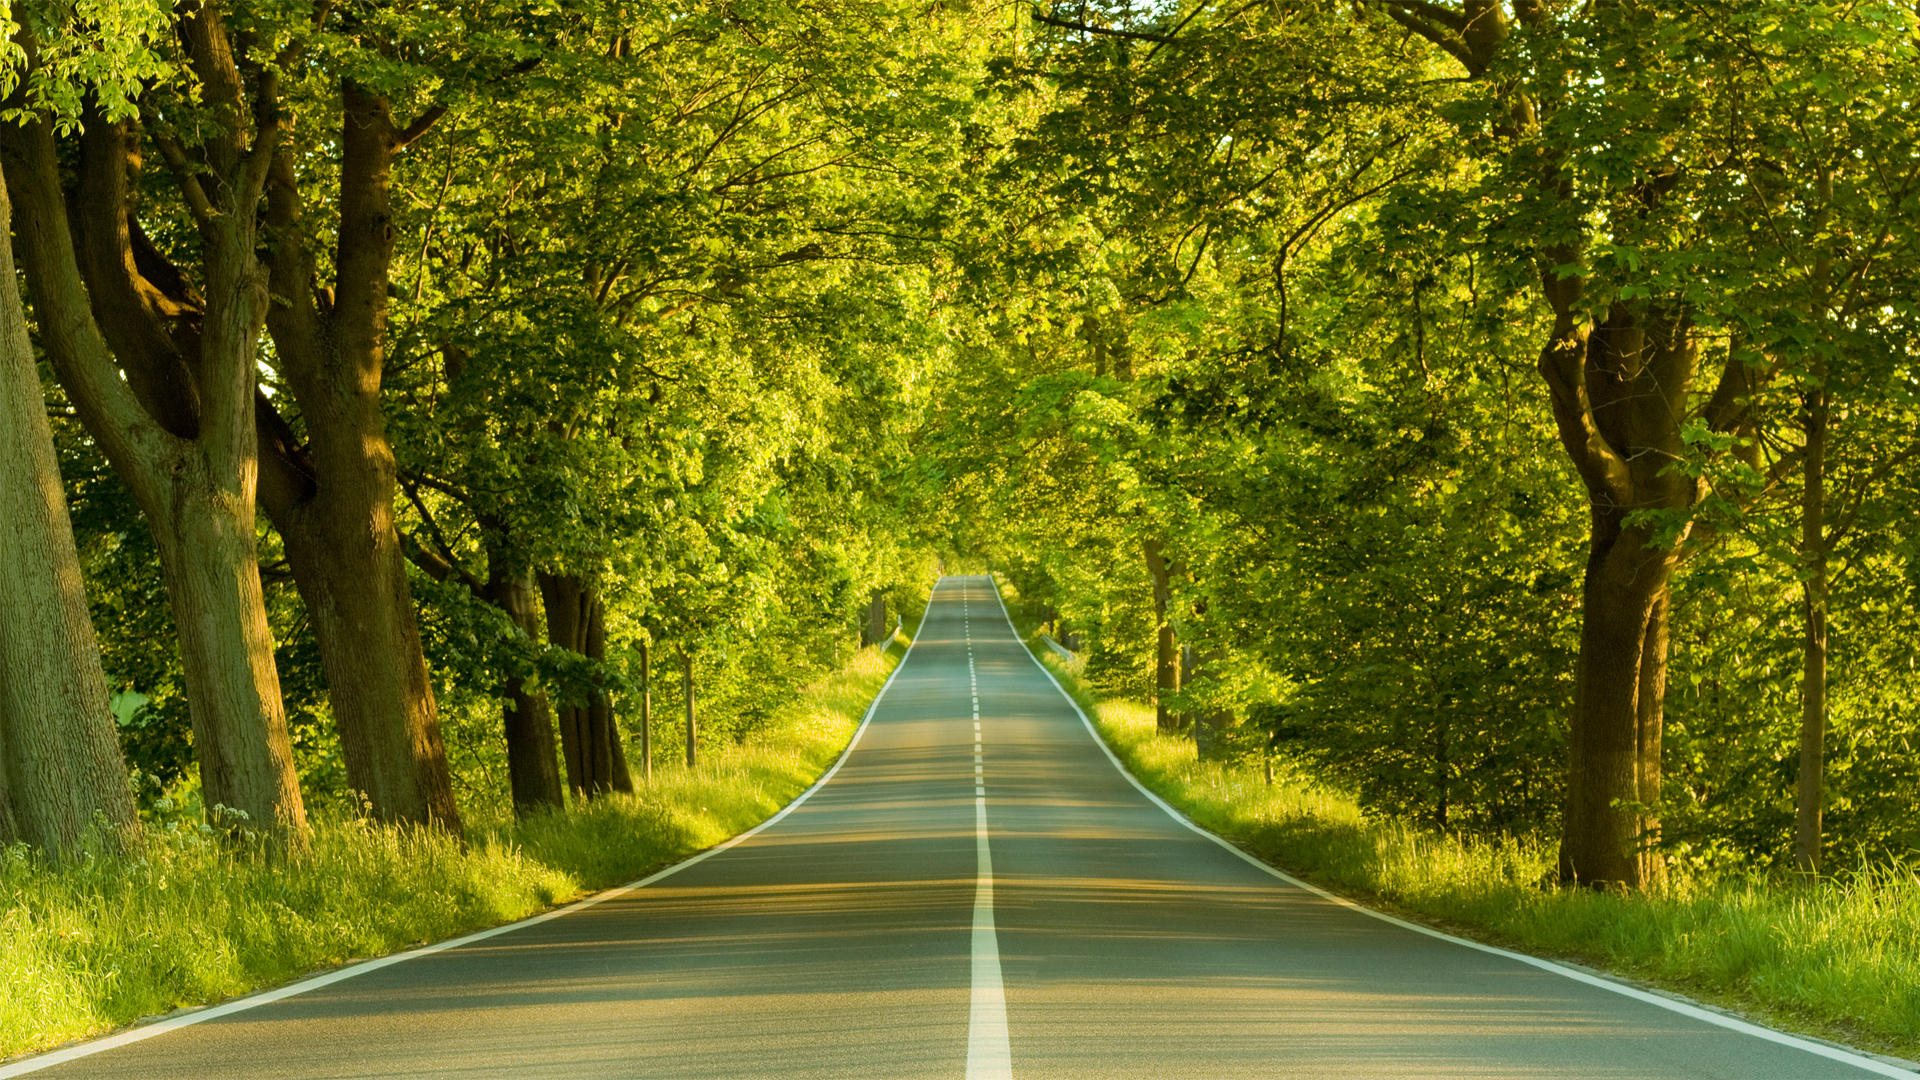 Amazing Forest Road Wallpaper